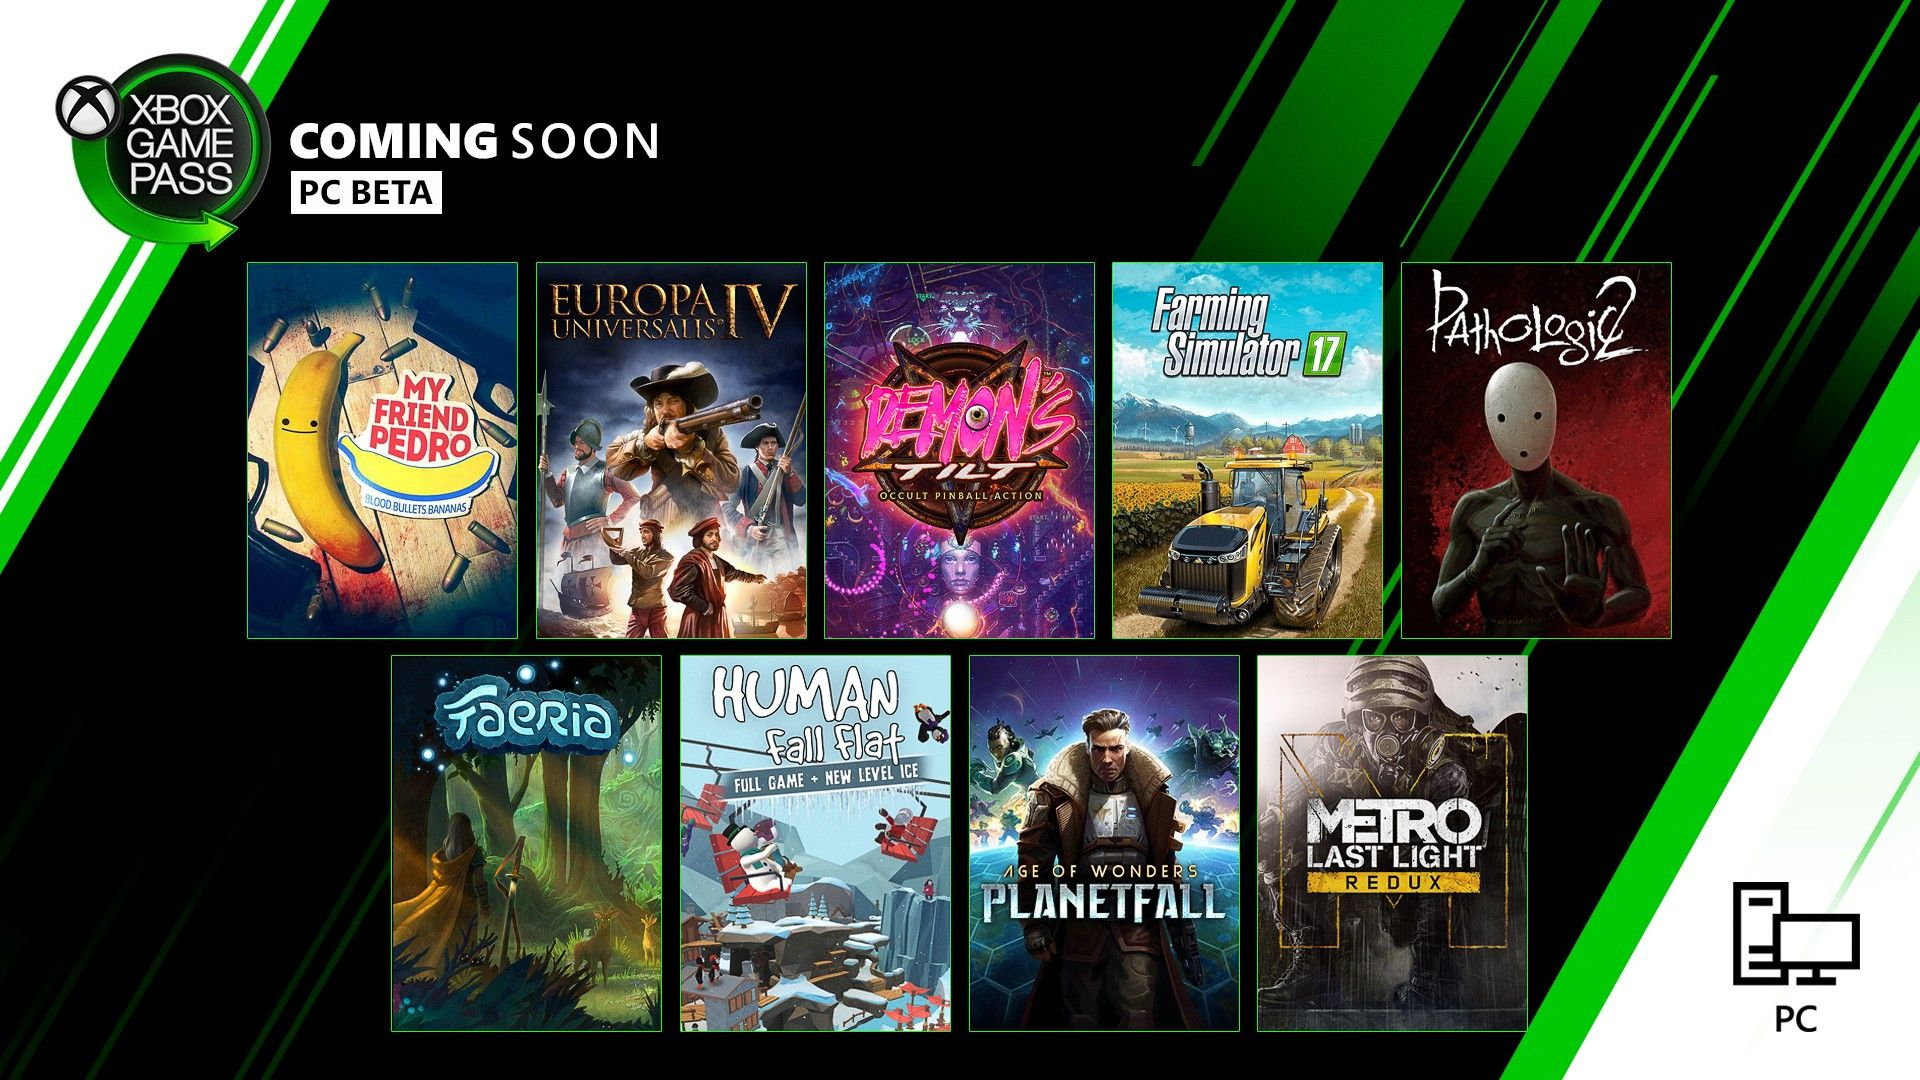 Xbox Game Pass December 2019 Lineup Revealed With Images Game